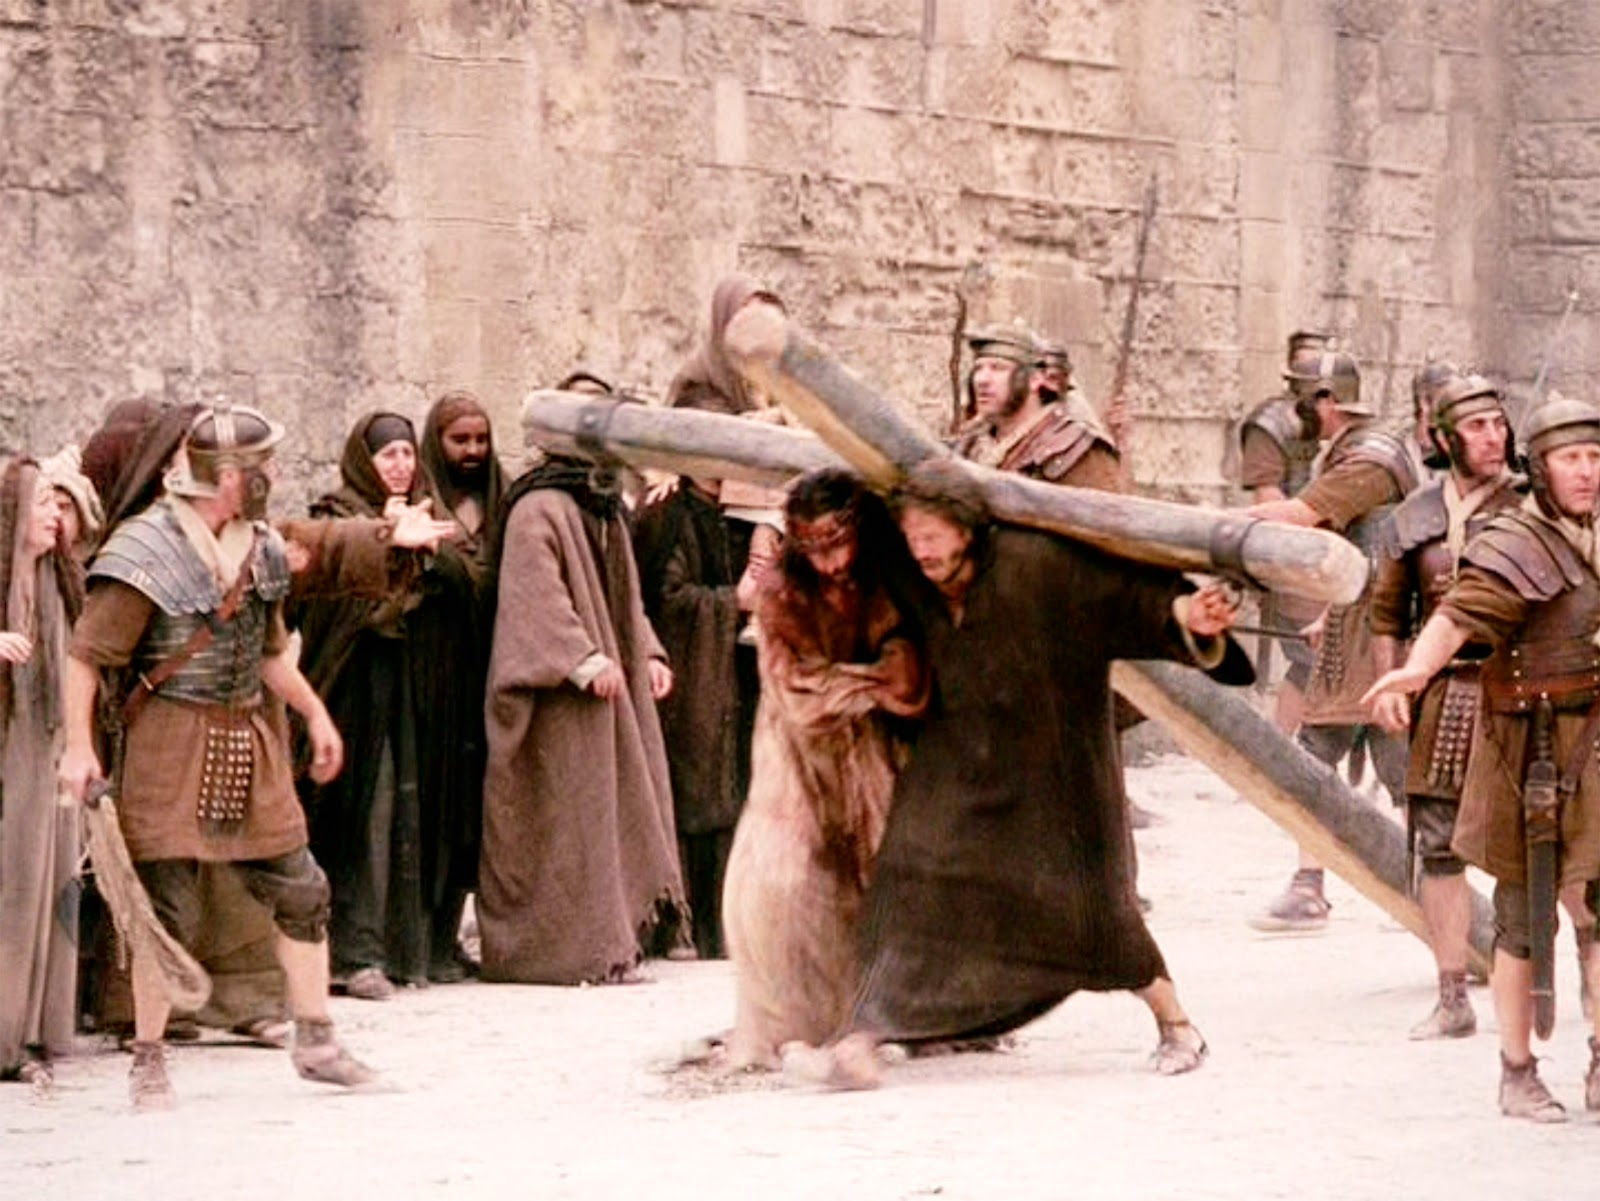 Passion of the Christ, The (page 6 of 7)